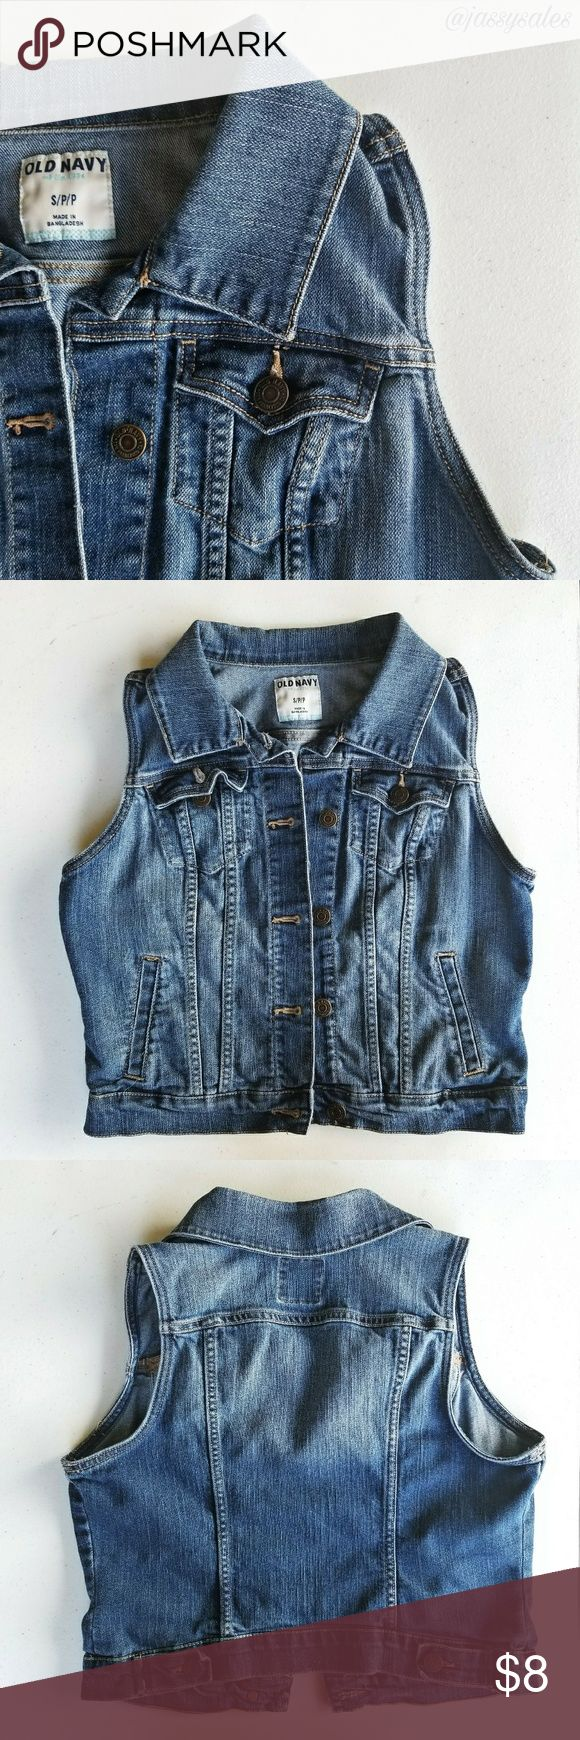 Old Navy Medium Wash Denim Vest 》 Size: SMALL WOMEN'S 》 Condition: This denim vest is in great condition and a must have basic for any wardrobe! The only flaws are a little fading from regualr wear. Old Navy Jackets & Coats Vests